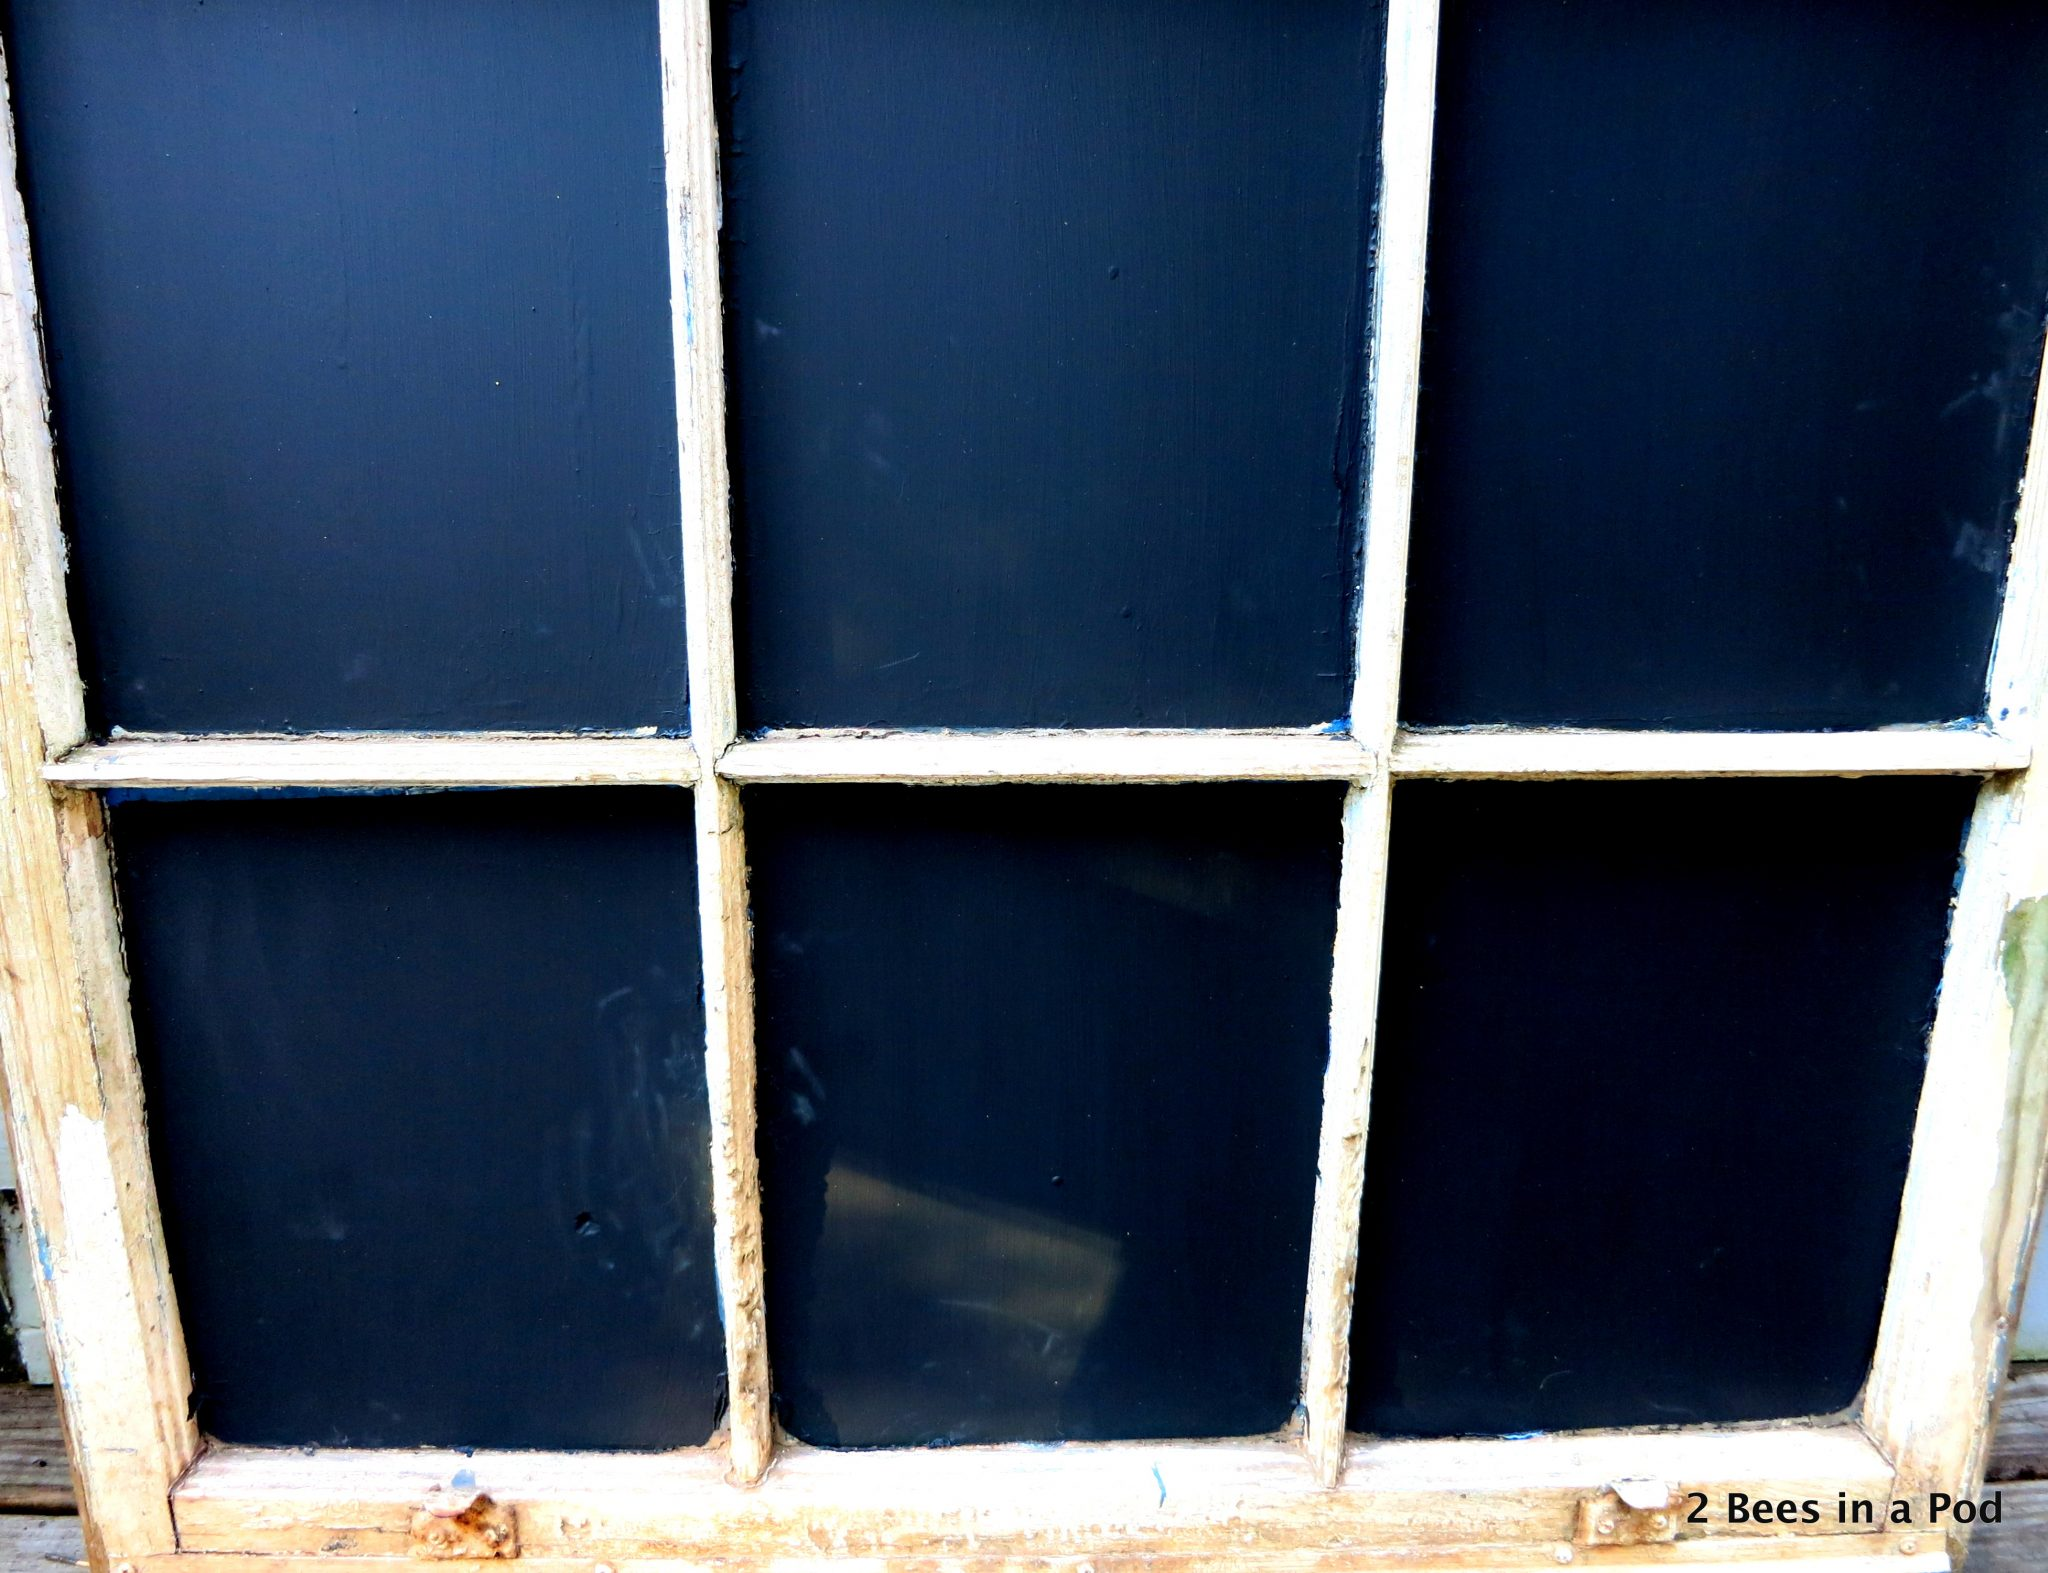 Using an old window to paint the panes with chalk paint...trash to treasure!